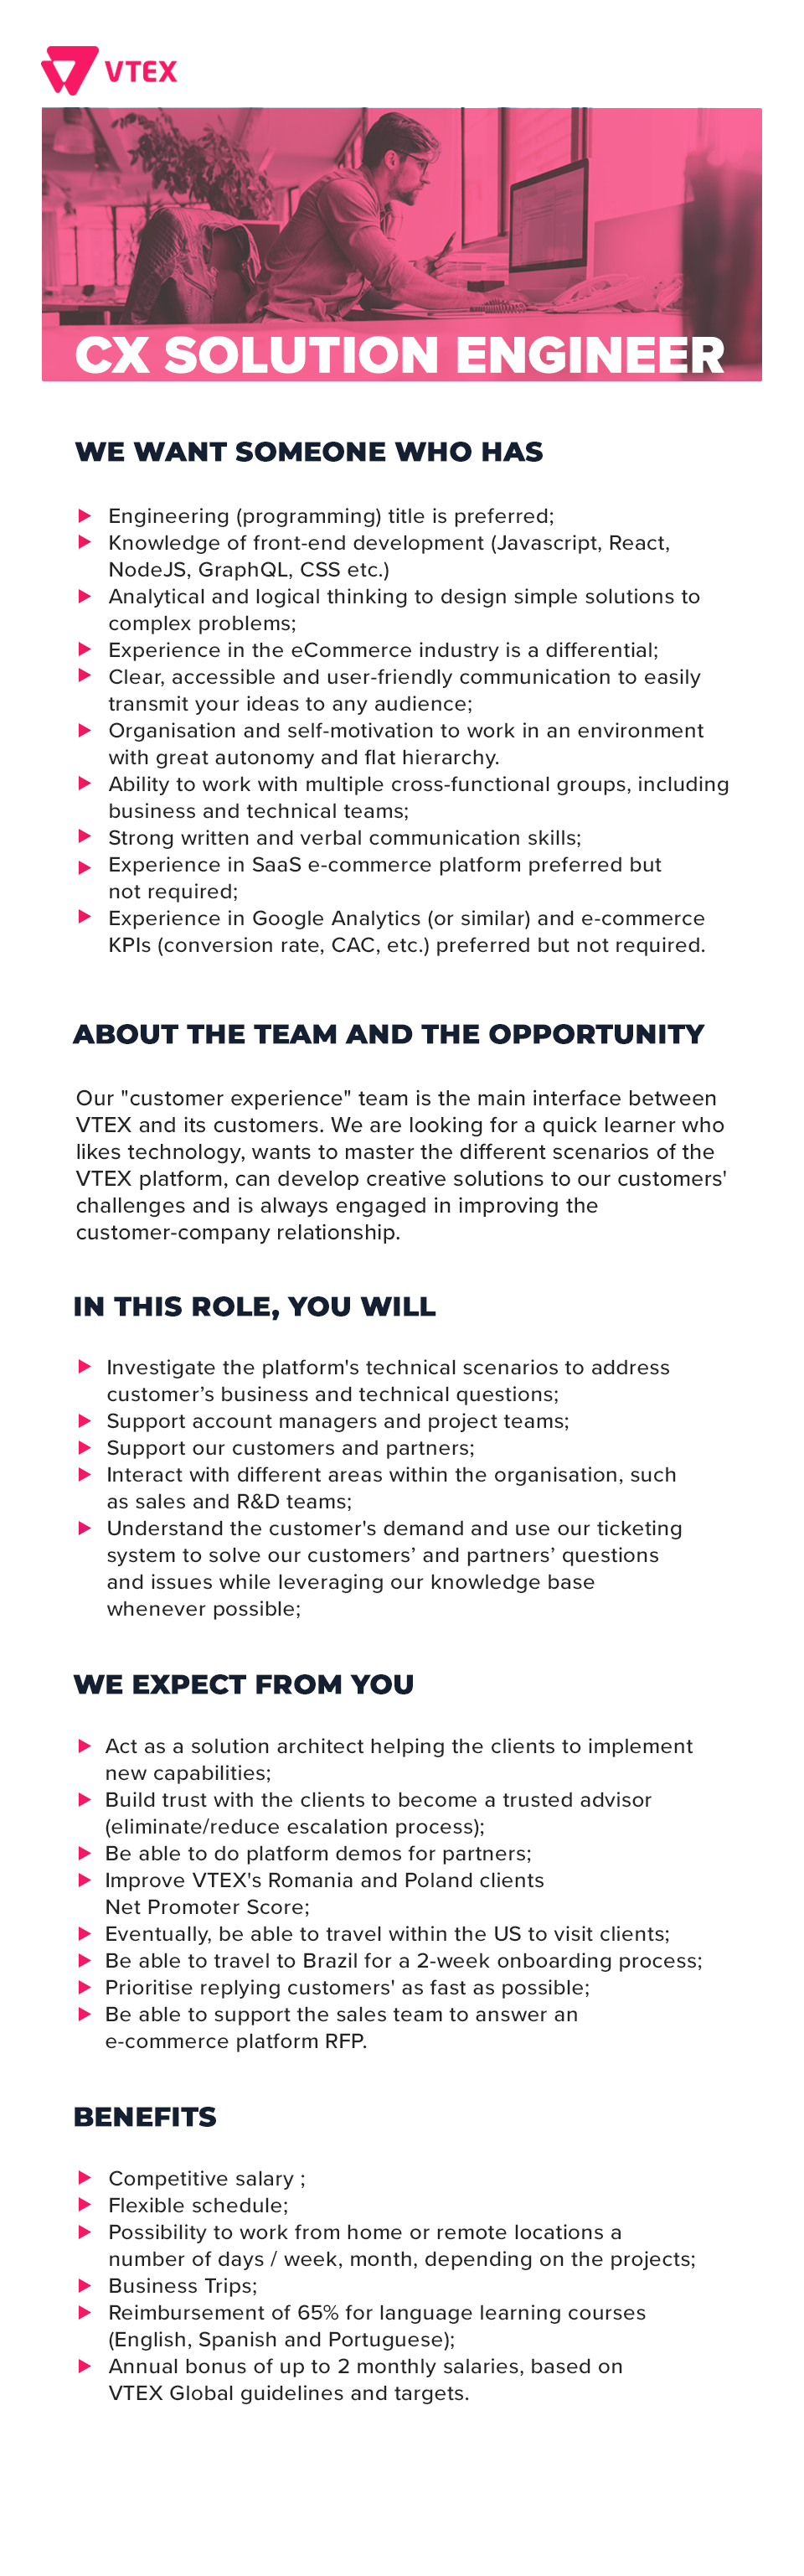 WE WANT SOMEONE WHO HAS  Engineering (programming) title is preferred; Knowledge of front-end development (Javascript, React, NodeJS, GraphQL, CSS etc.) Analytical and logical thinking to design simple solutions to complex problems; Experience in the eCommerce industry is a differential; Clear, accessible and user-friendly communication to easily transmit your ideas to any audience; Organisation and self-motivation to work in an environment with great autonomy and flat hierarchy. Ability to work with multiple cross-functional groups, including business and technical teams; Strong written and verbal communication skills; Experience in SaaS e-commerce platform preferred but not required; Experience in Google Analytics (or similar) and e-commerce KPIs (conversion rate, CAC, etc.) preferred but not required.  ABOUT THE TEAM AND THE OPPORTUNITY Our